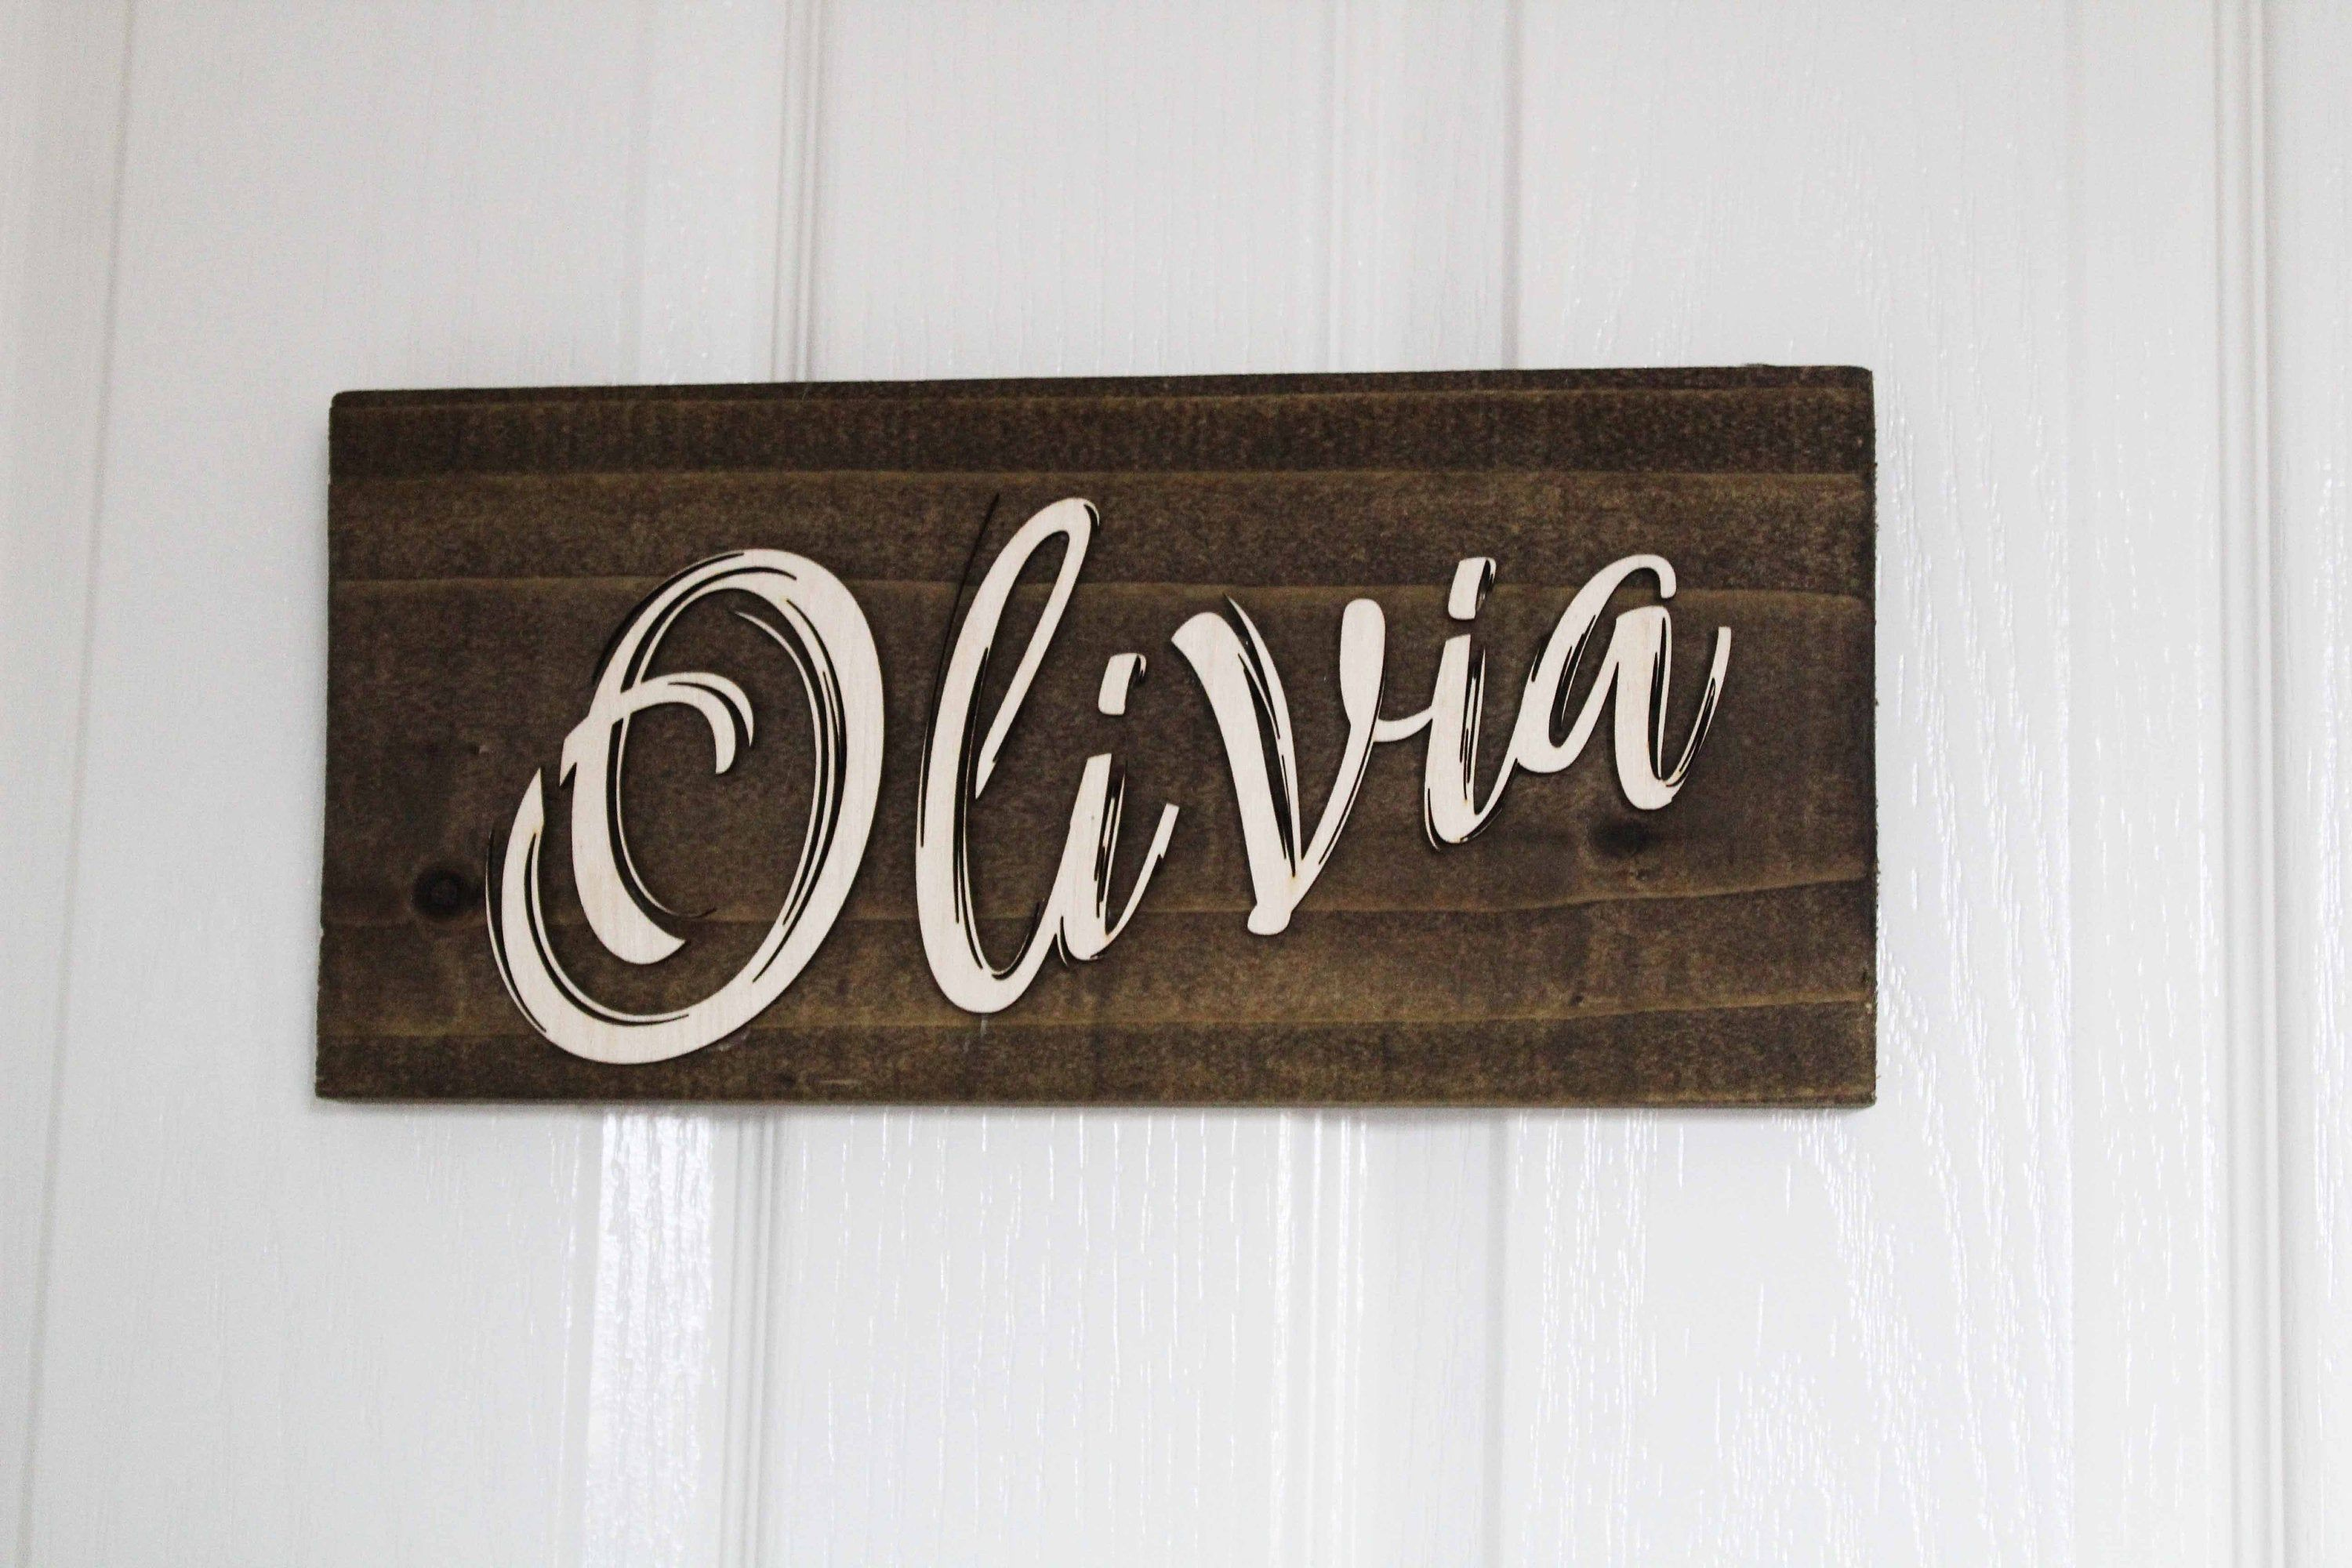 Personalised Bedroom Door Sign Name Rustic Wooden Pyrography Etsy Wooden Door Signs Rustic Wooden Sign Bedroom Door Signs